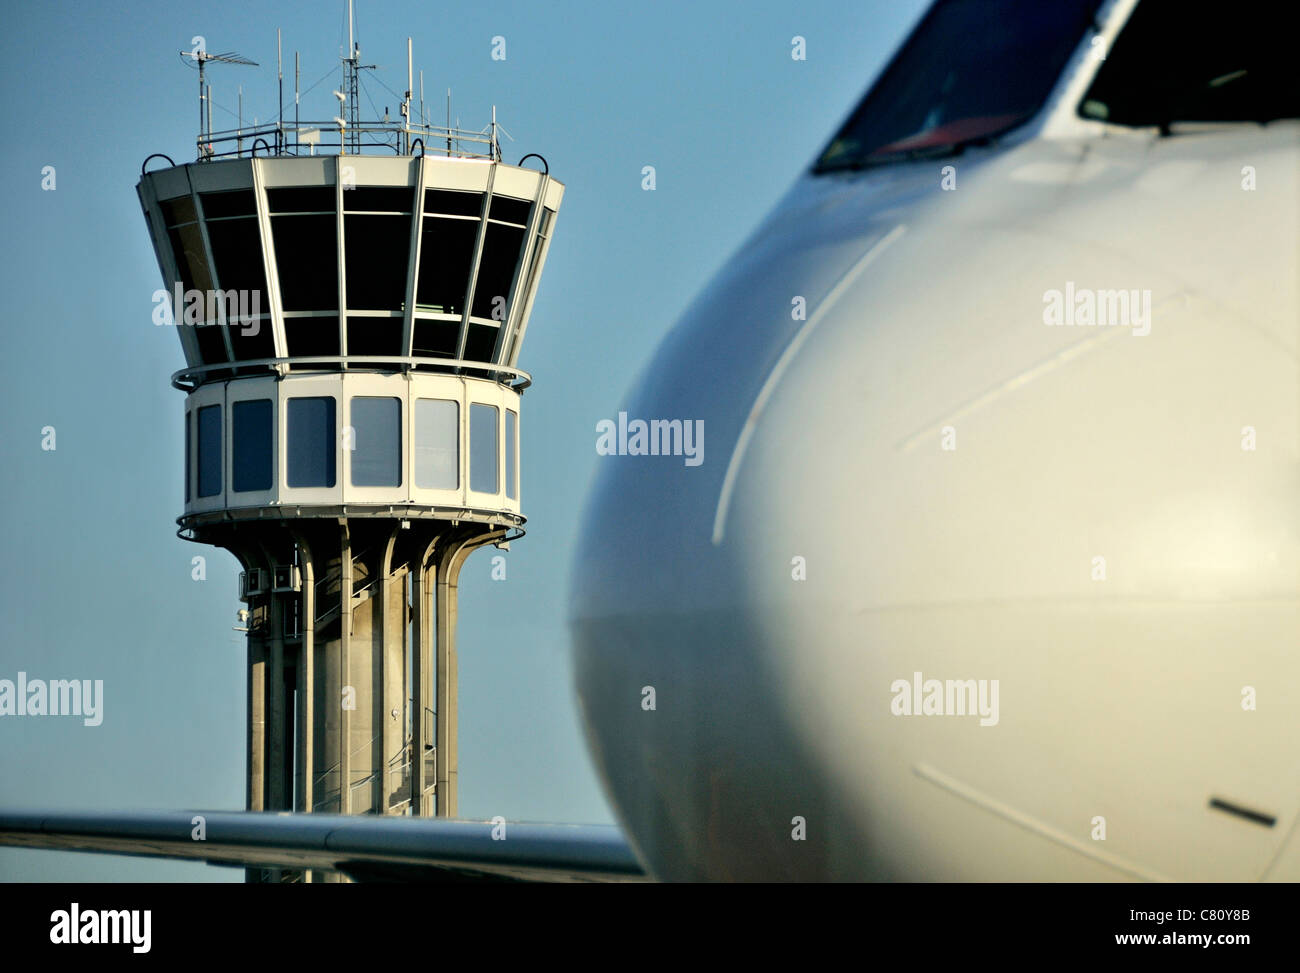 Air traffic control tower and aeroplane at Airport Saint Exupery, Lyon, France - Stock Image